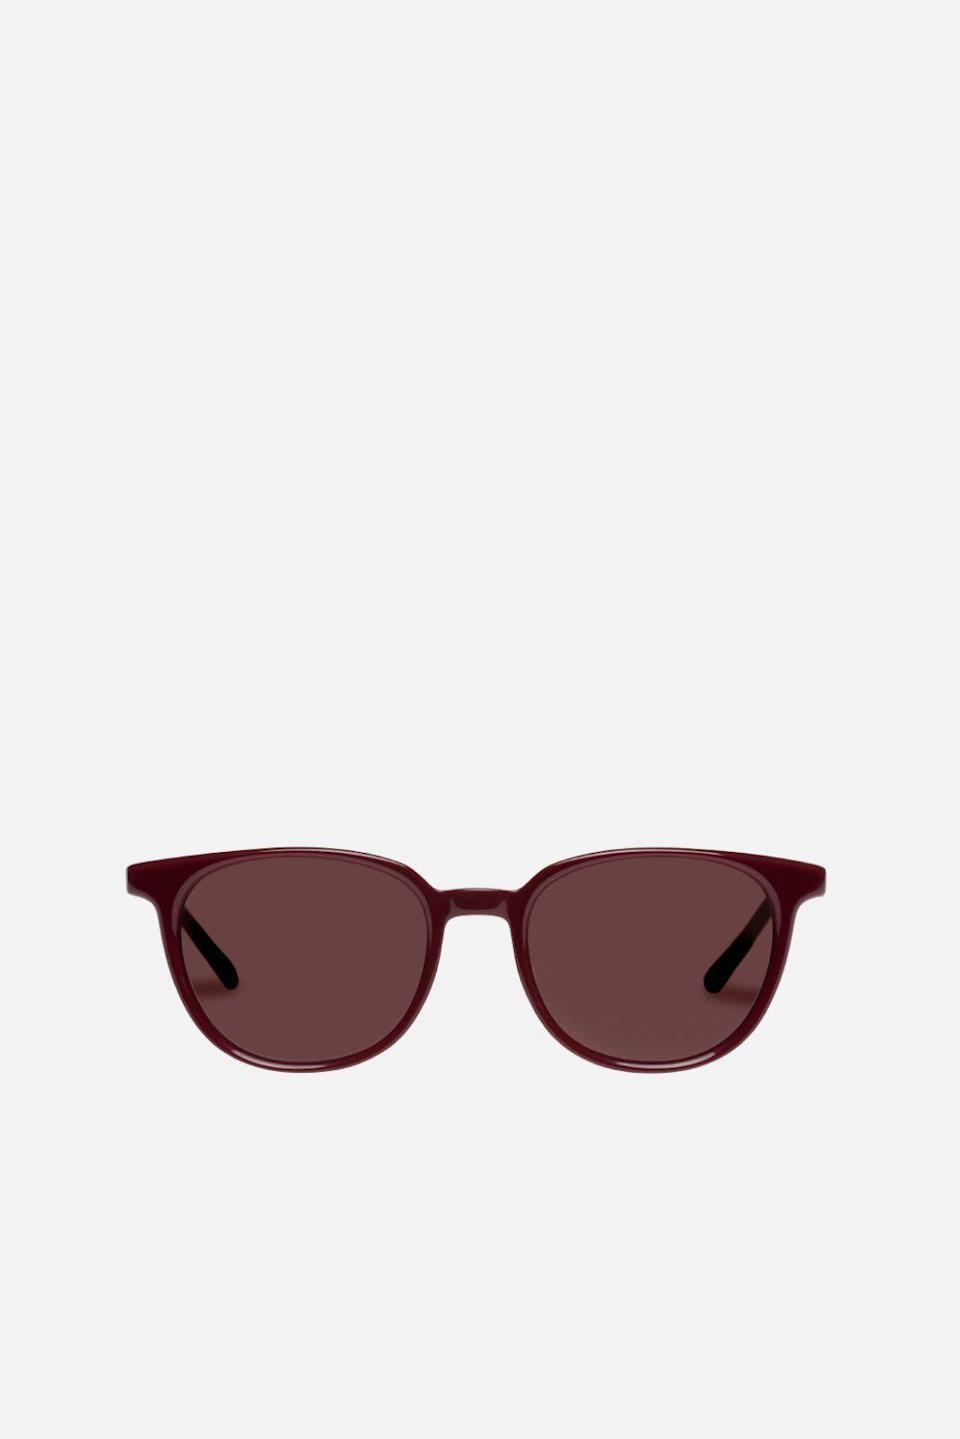 """<p><strong>Le Specs </strong></p><p>bandier.com</p><p><strong>$84.97</strong></p><p><a href=""""https://go.redirectingat.com?id=74968X1596630&url=https%3A%2F%2Fwww.bandier.com%2Fcollections%2Fsale%2Fproducts%2Fnomad-1&sref=https%3A%2F%2Fwww.womenshealthmag.com%2Ffitness%2Fg33075524%2Fbandier-july-4th-sale%2F"""" rel=""""nofollow noopener"""" target=""""_blank"""" data-ylk=""""slk:SHOP NOW"""" class=""""link rapid-noclick-resp"""">SHOP NOW</a></p><p><strong><del>$129</del> <del>$84.97</del> Now $50.98</strong></p><p>Cult-favorite sunglasses brand Le Specs counts everyone from Meghan Markle to Hailey Bieber as fans. Here, a classic and flattering rectangular silhouette you'll be able to wear all year long.</p>"""